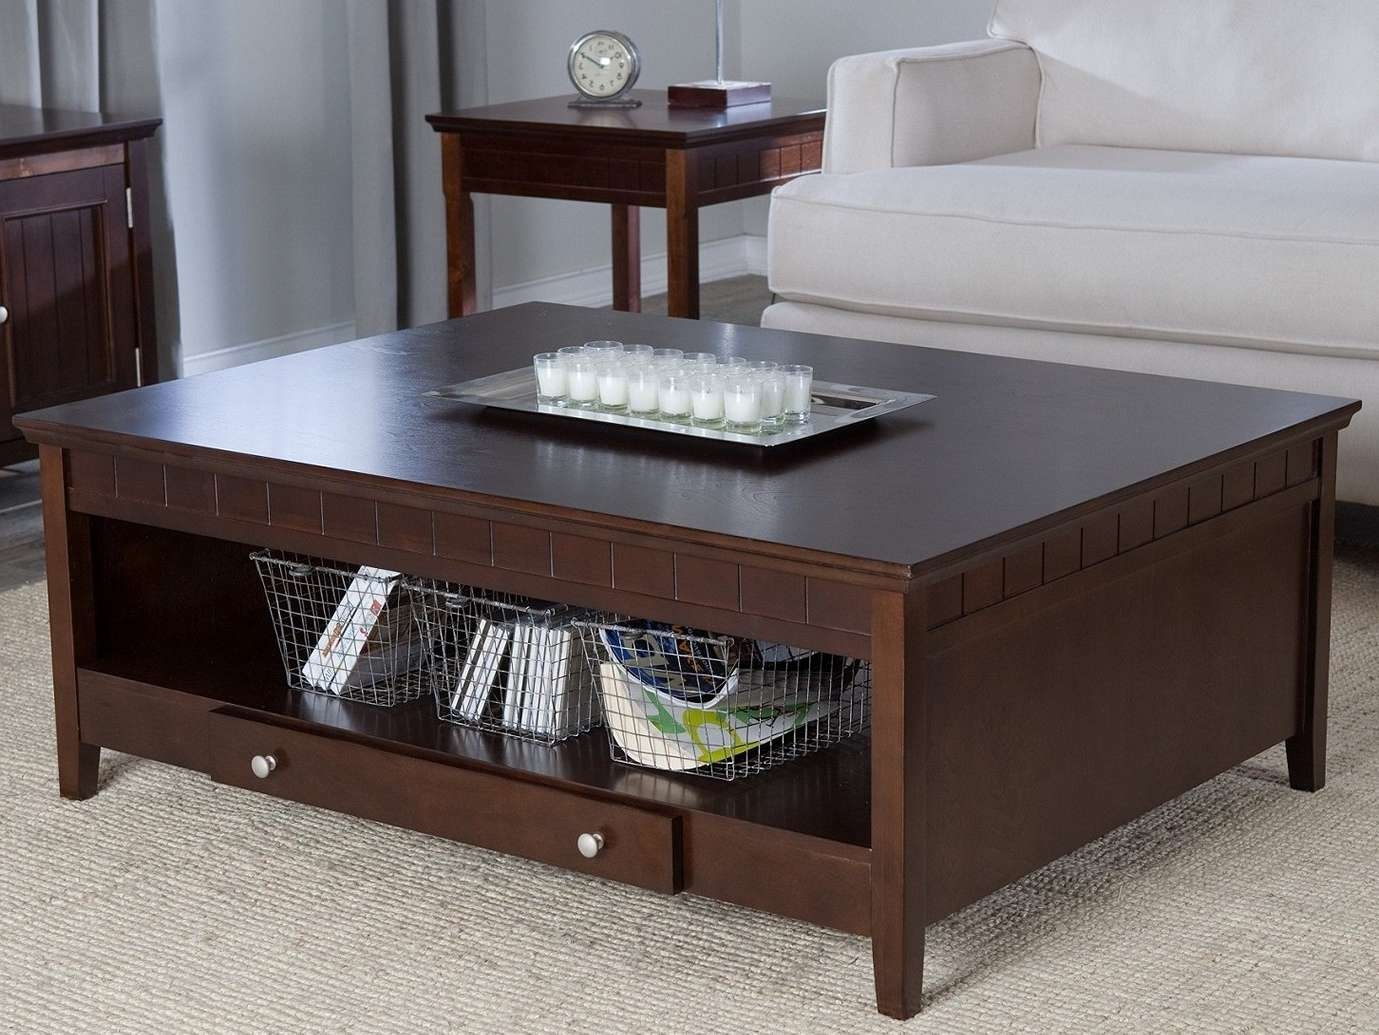 Fashionable Espresso Coffee Tables For Coffee Tables : Astonishing Espresso Coffee Table With Open Shelf (View 6 of 20)